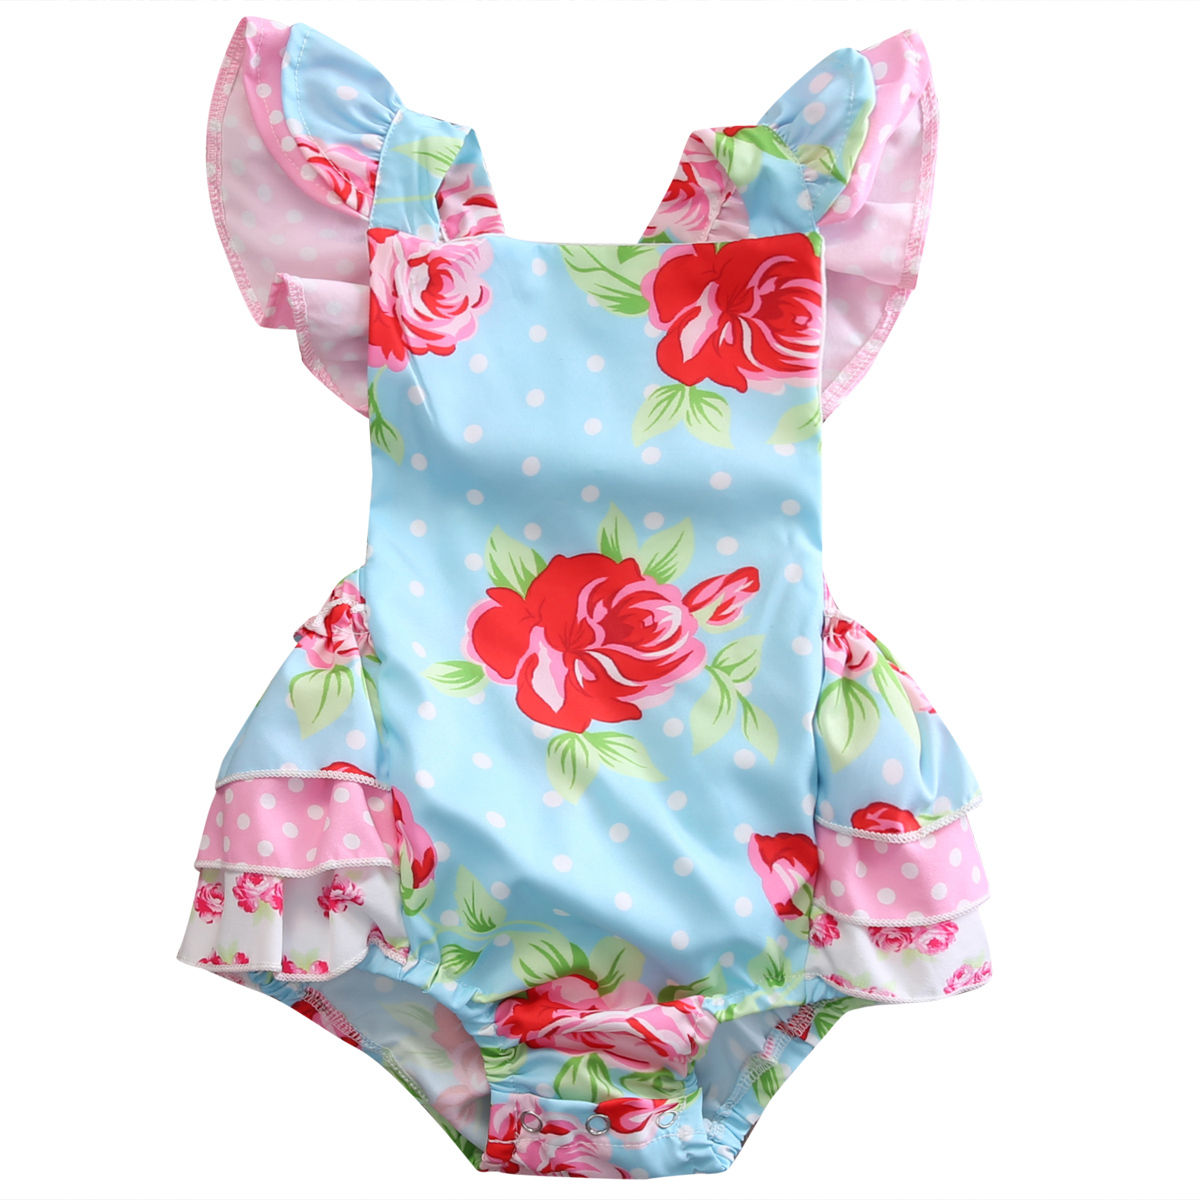 Floral Infant Baby Girl Ruffle Romper Cute Summer Flower Jumper Jumpsuit Sunsuit Rompers Clothes ...